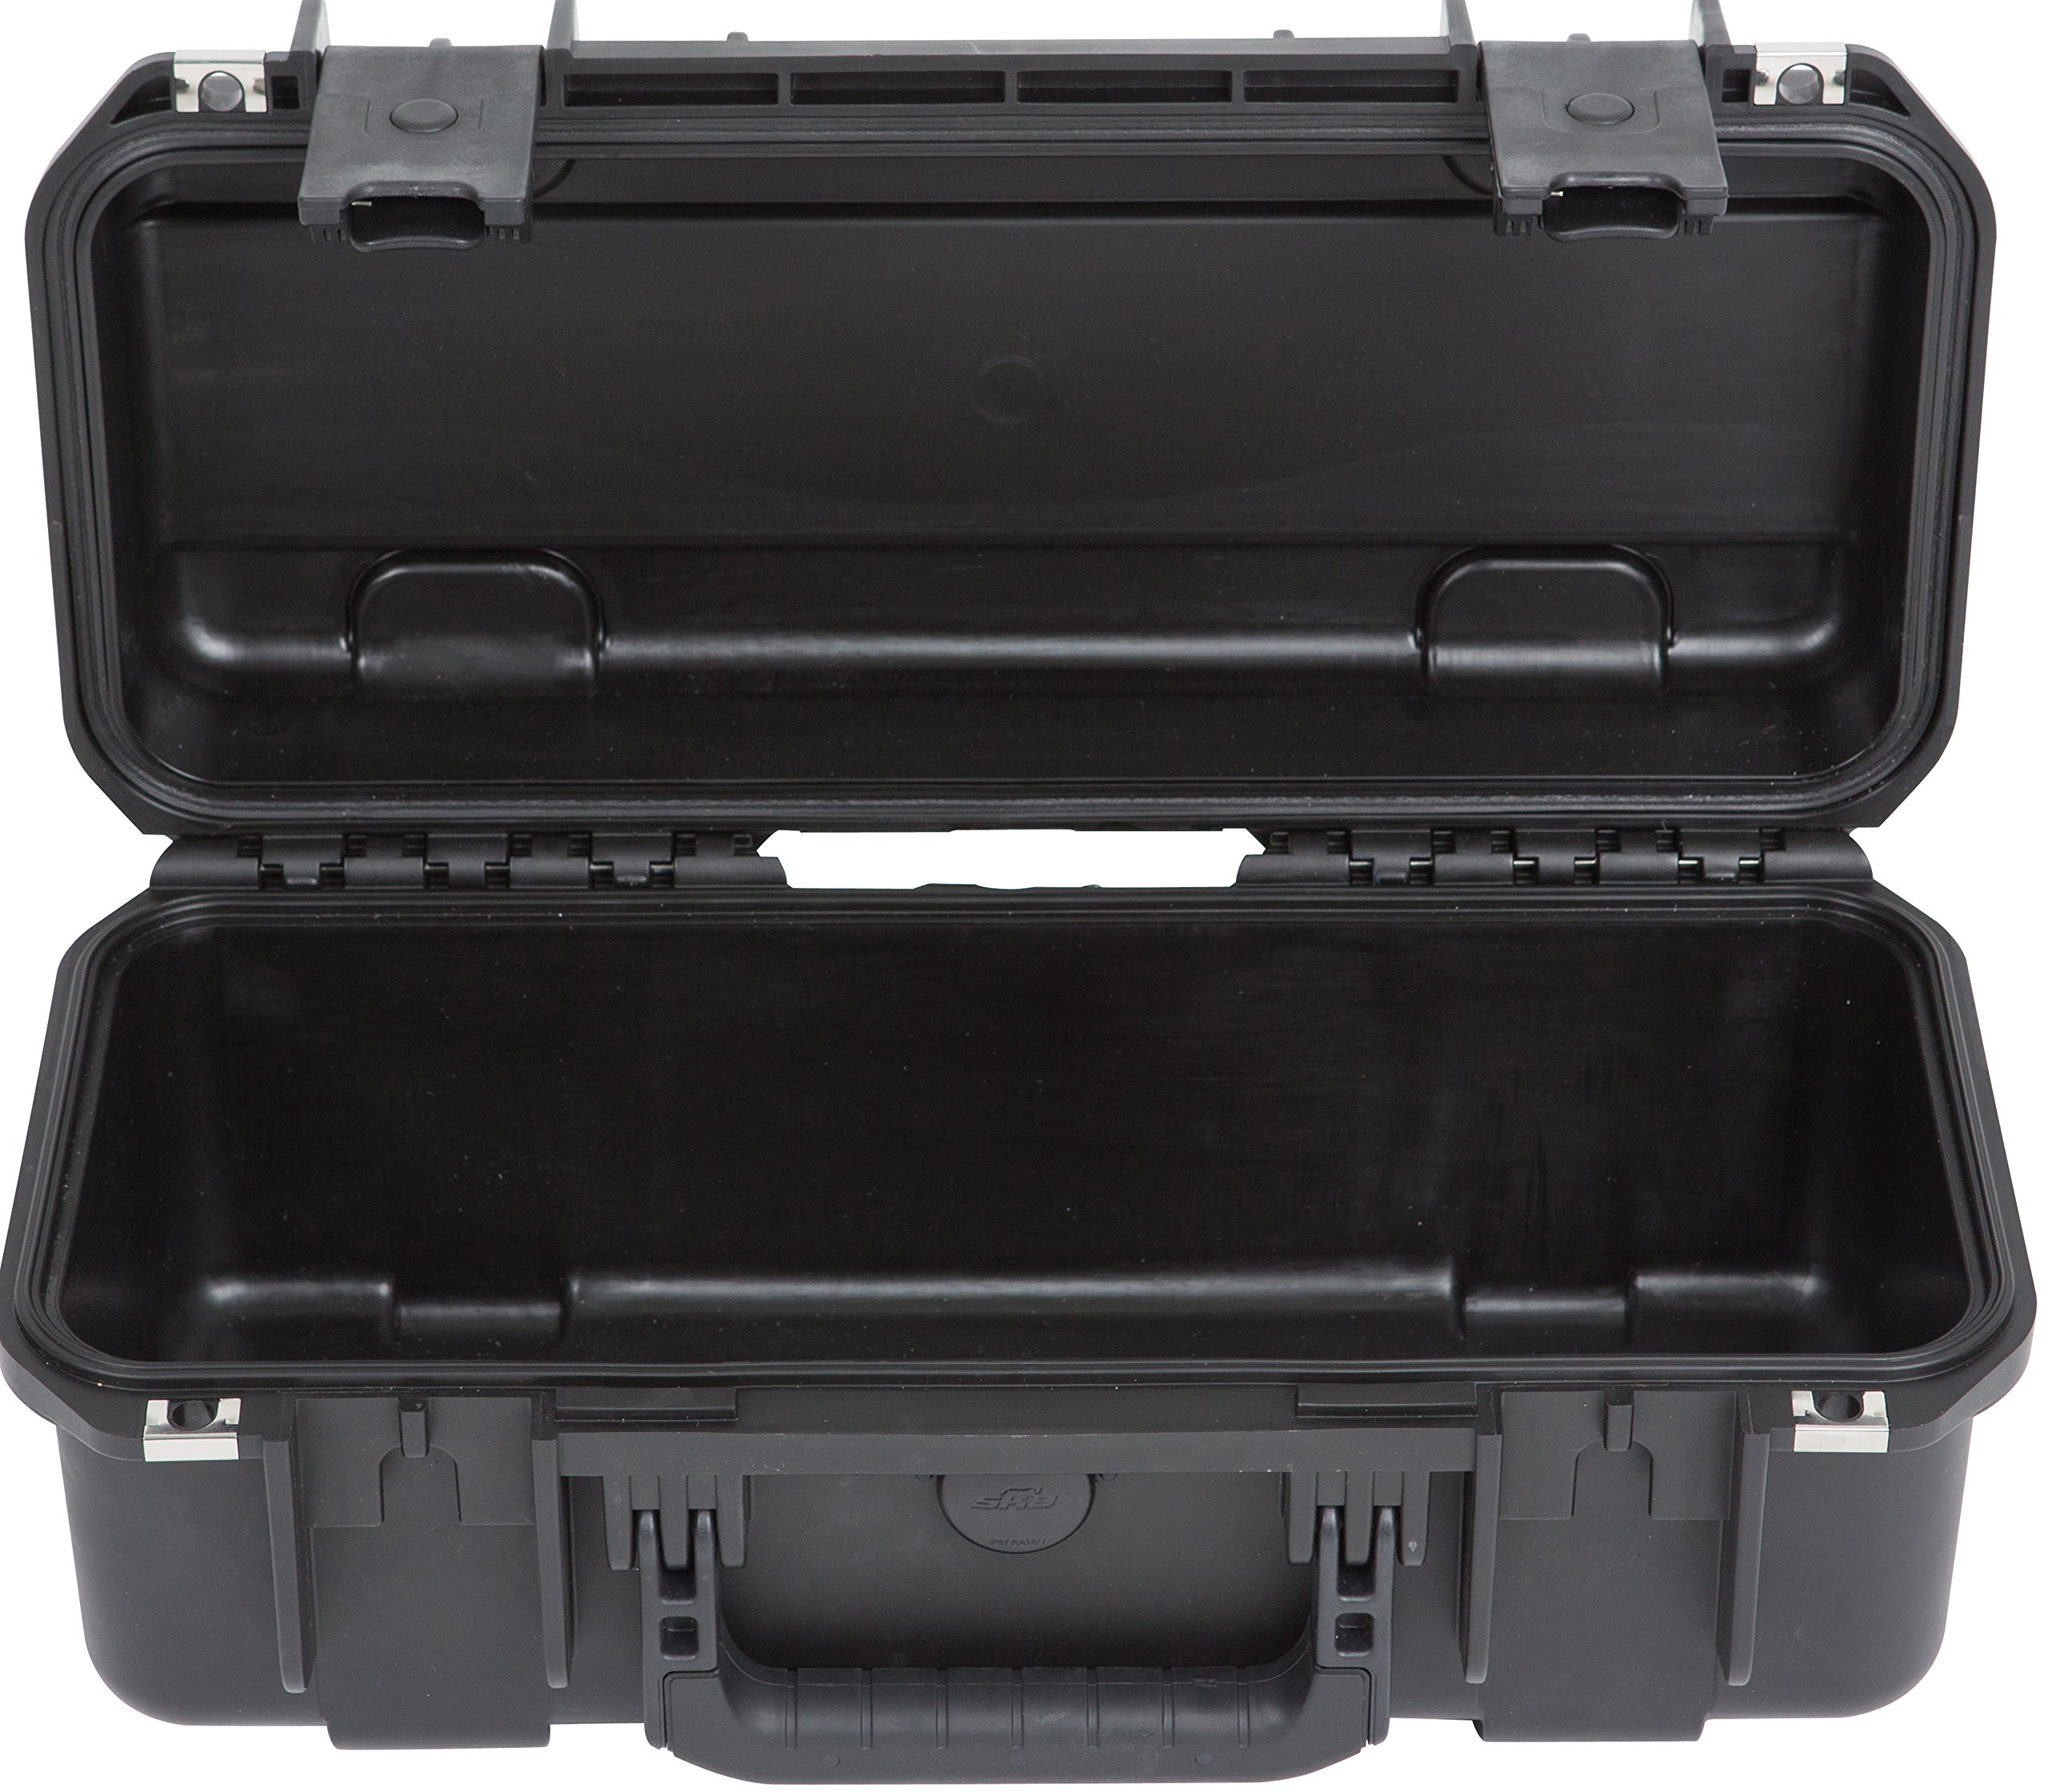 SKB 3i-1706-6B-E -Channel Component Rack by SKB